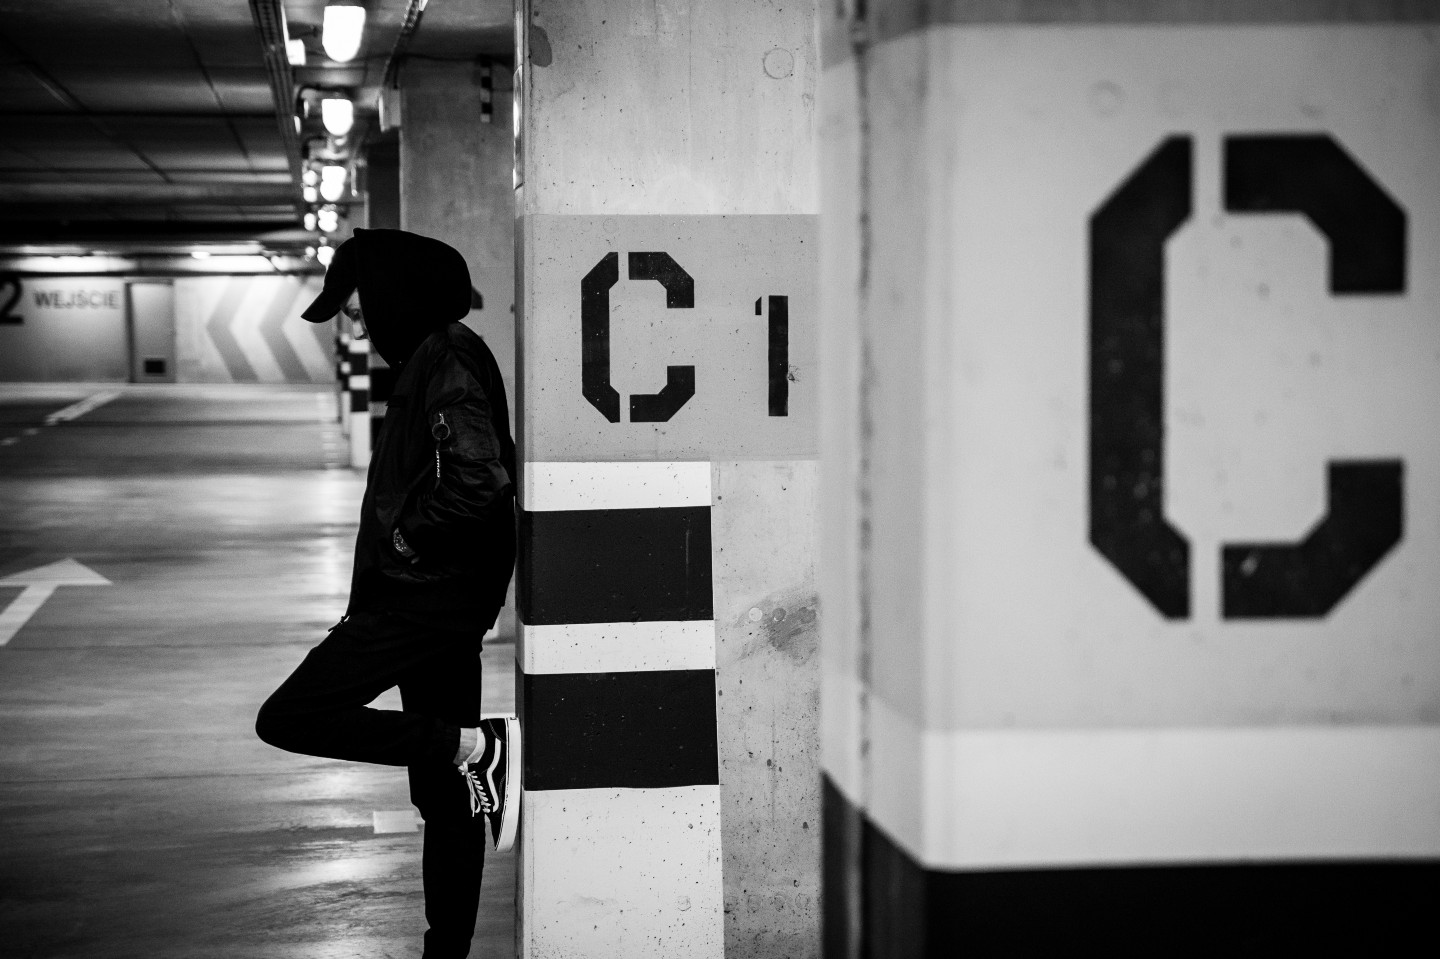 Man in black clothe and a hood leaning on a pillar in a parking garage with the letter C shown prominently